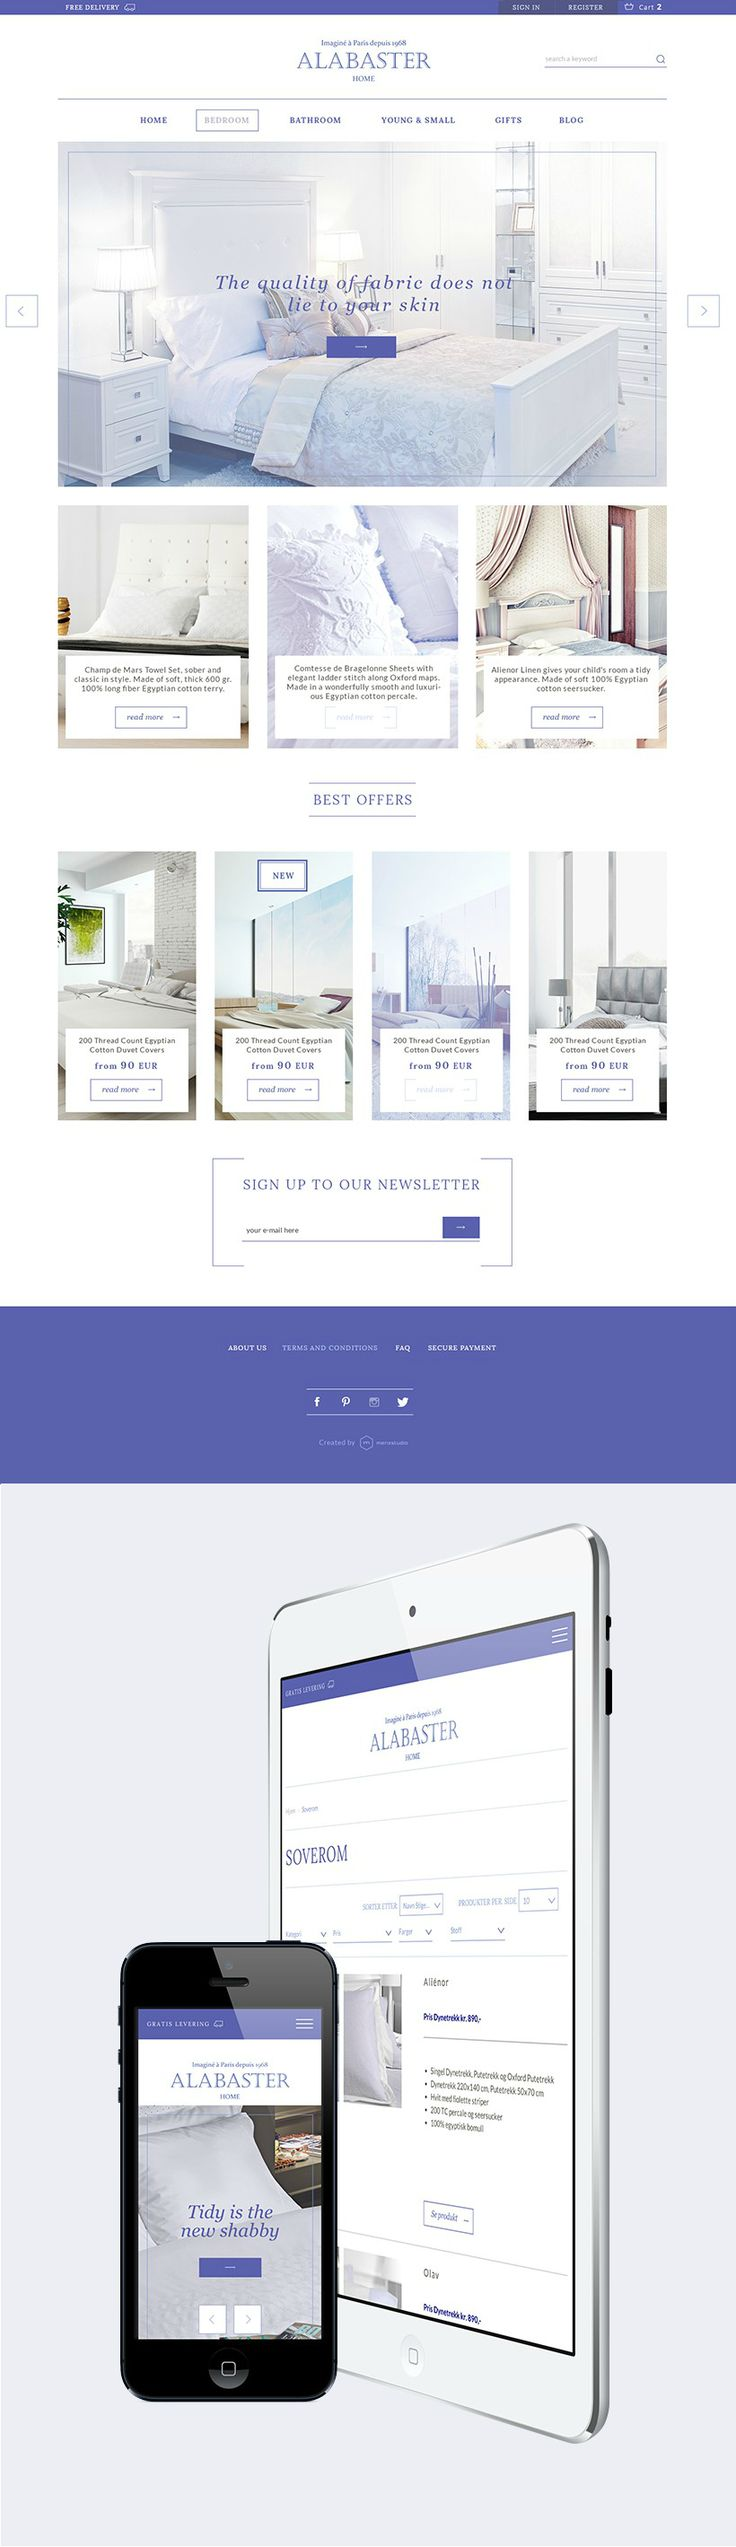 """Alabster is the luxury home linen & bedding sets retailer from Norway.  With this project, the design focus was very much on emphasizing """"Parisian Chic & Scandinavian Comfort"""". We kept user interface slick, clean and simple, so minimalist was the guiding concept for Alabaster.  The site was built with Magento and is fully responsive, conforming perfectly to all types of screens, from desktop view to tables and smartphones. www.alabaster.no/"""